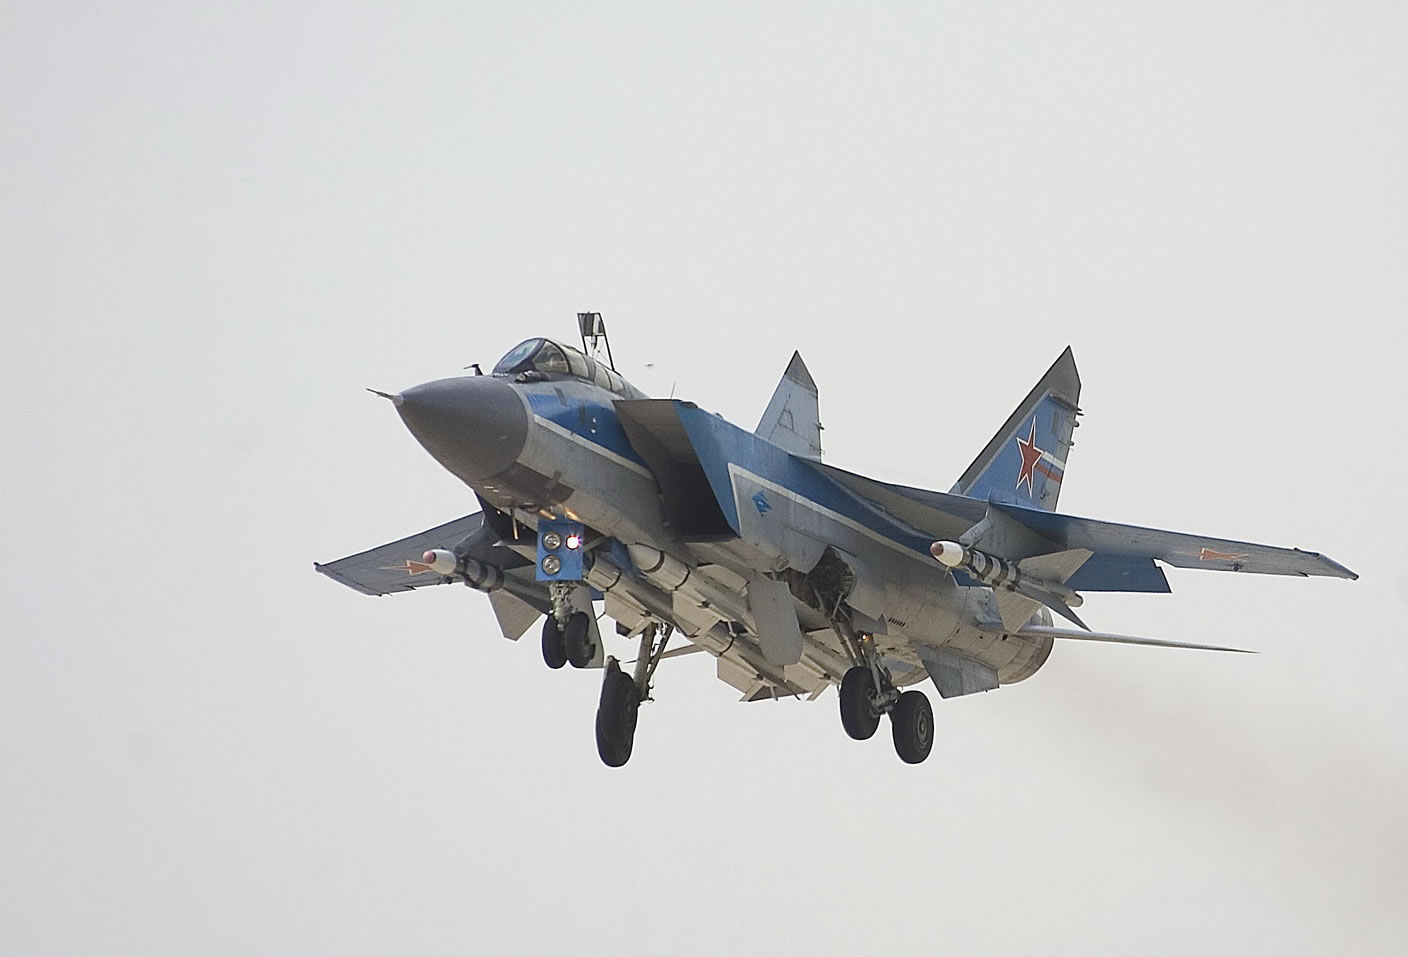 http://www.aircraftinformation.info/Images/MiG-31_02.jpg